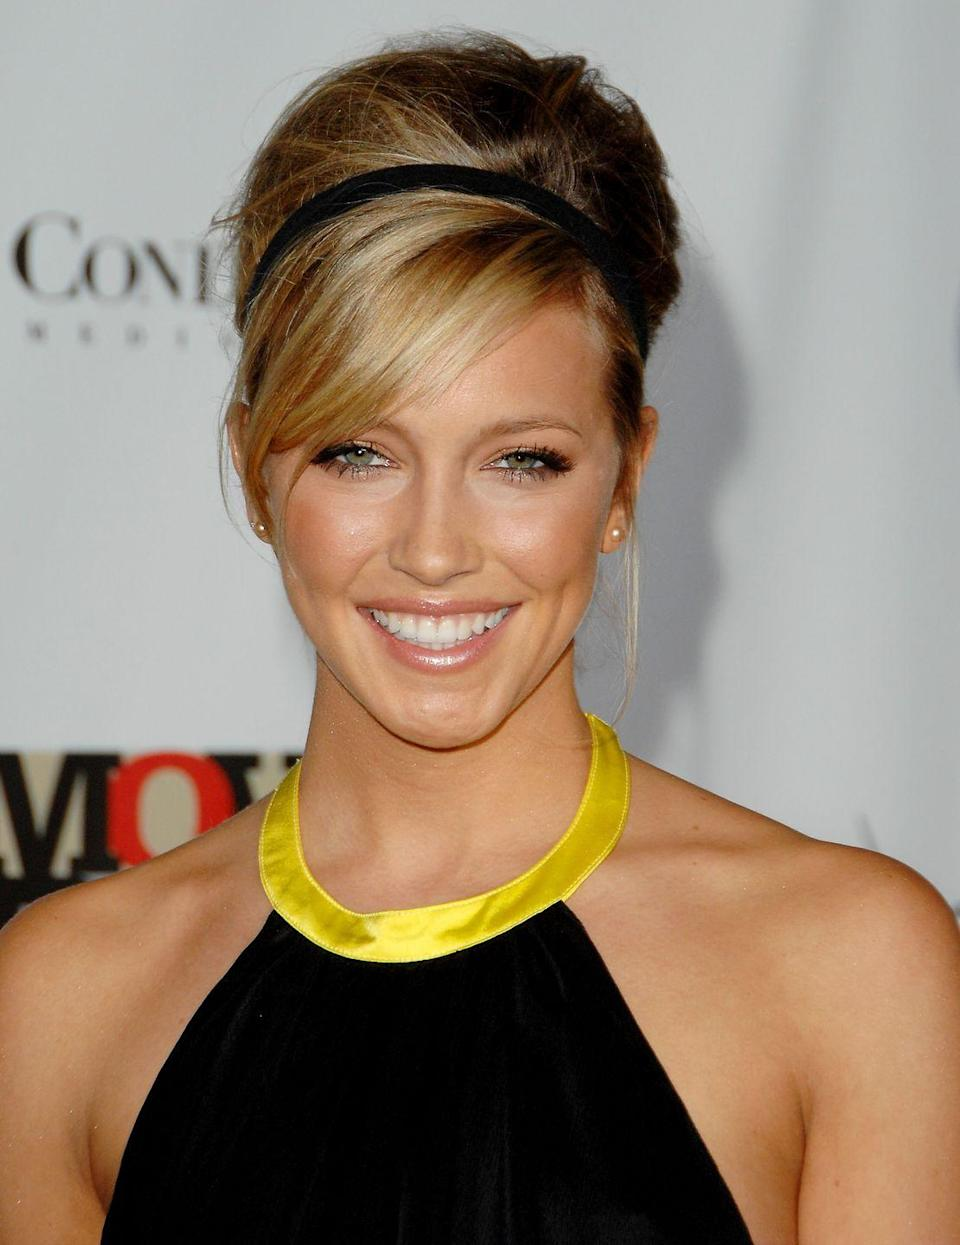 <p>Before playing the manipulative Juliet Sharp on<em> Gossip Girl</em>, Katie Cassidy was known as a scream queen, starring in horror films like <em>When a Stranger Calls</em> and <em>Black Christmas</em> (2006). Fame is in her DNA—her father is the late David Cassidy of <em>The Partridge Family</em>!</p>